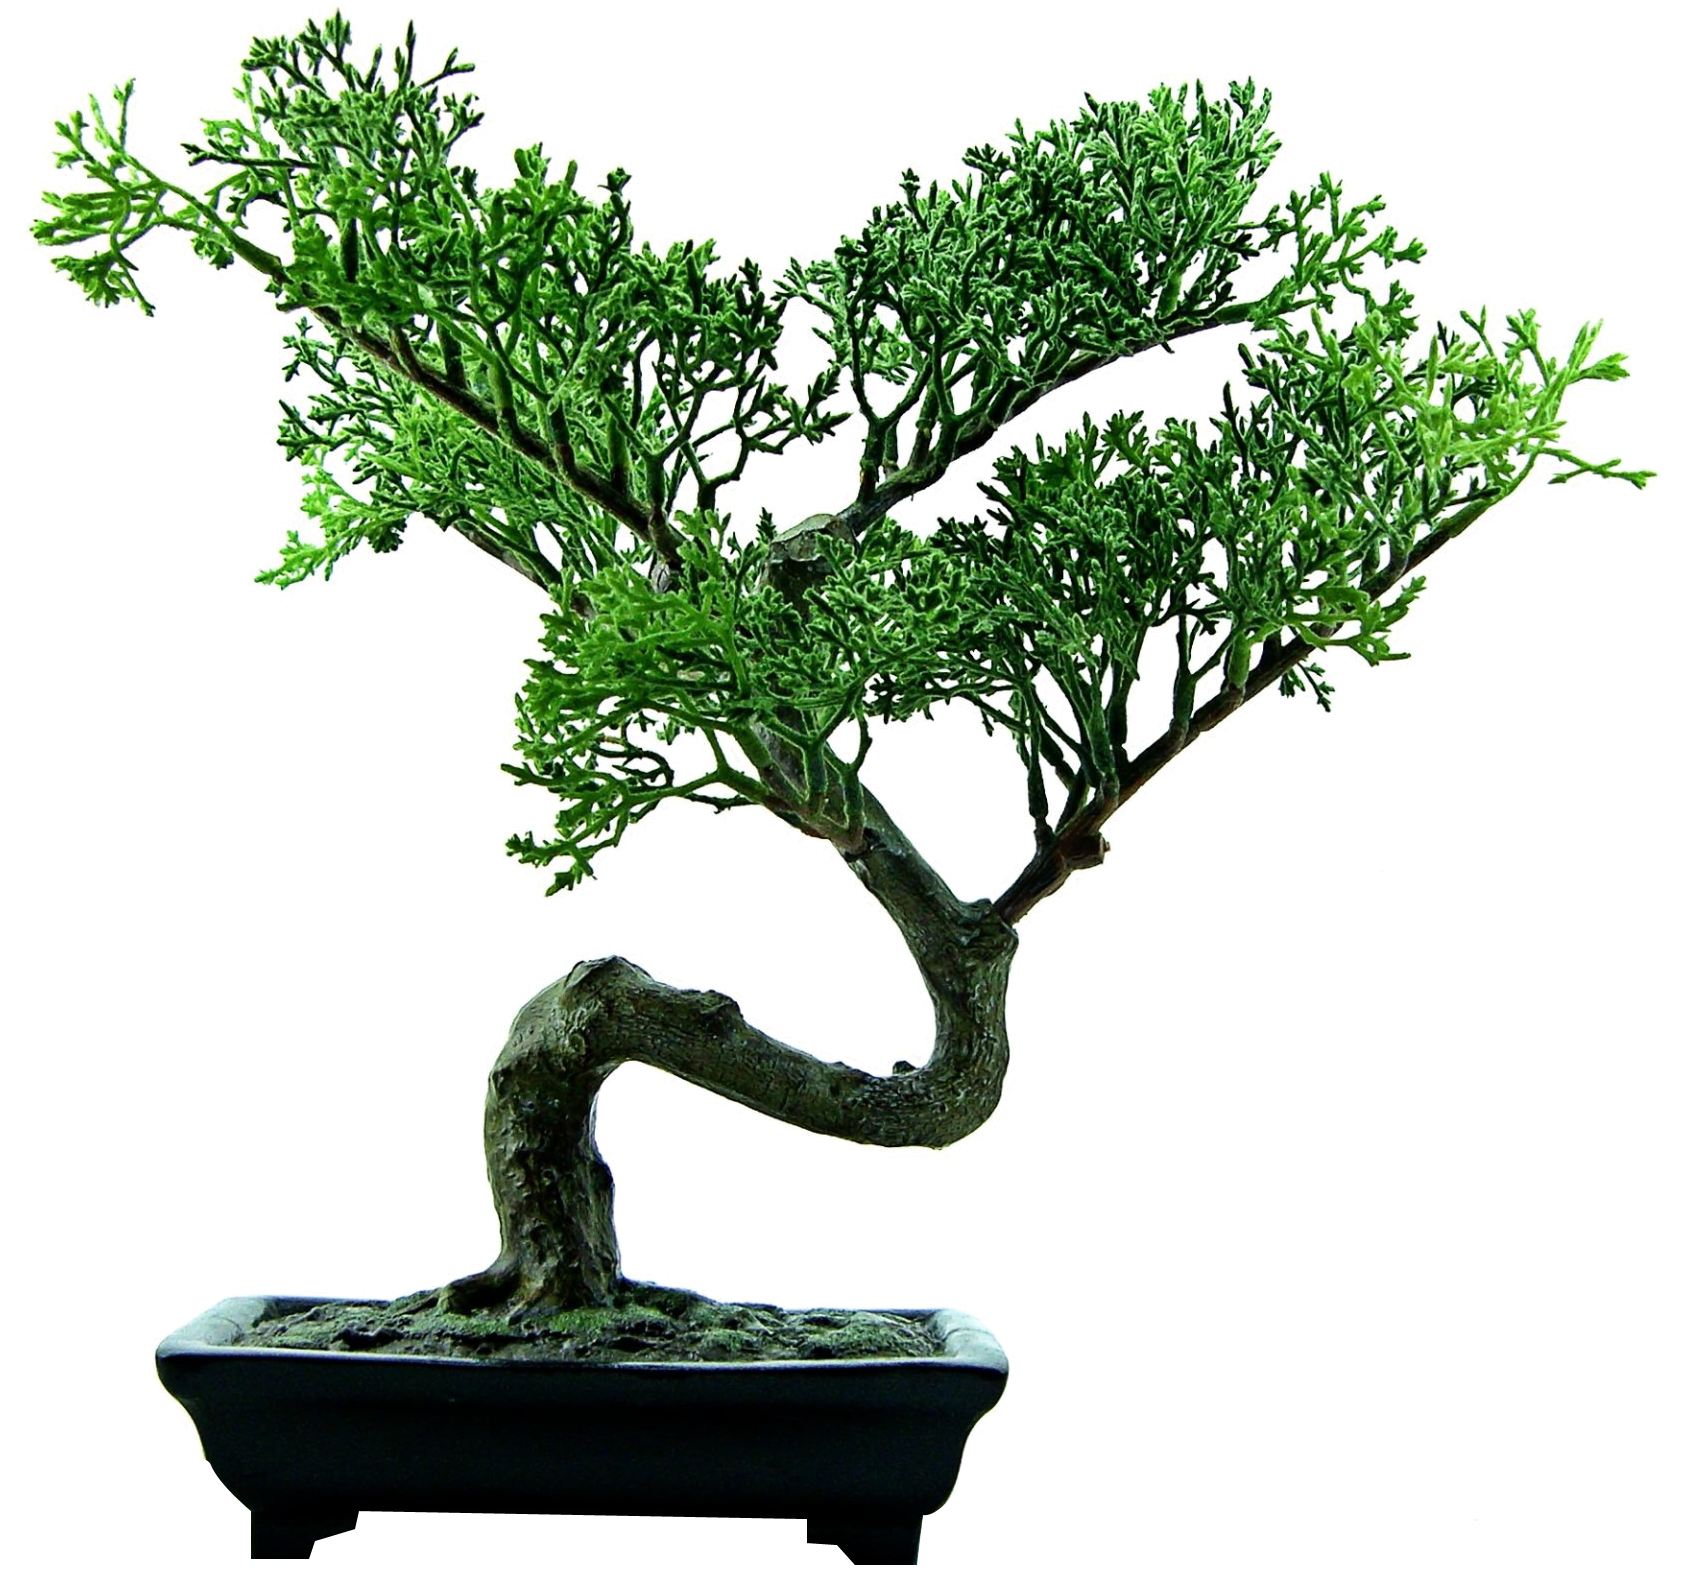 Bonsai tree clipart jpg free stock Bonsai Tree PNG Image - PurePNG | Free transparent CC0 PNG Image Library jpg free stock